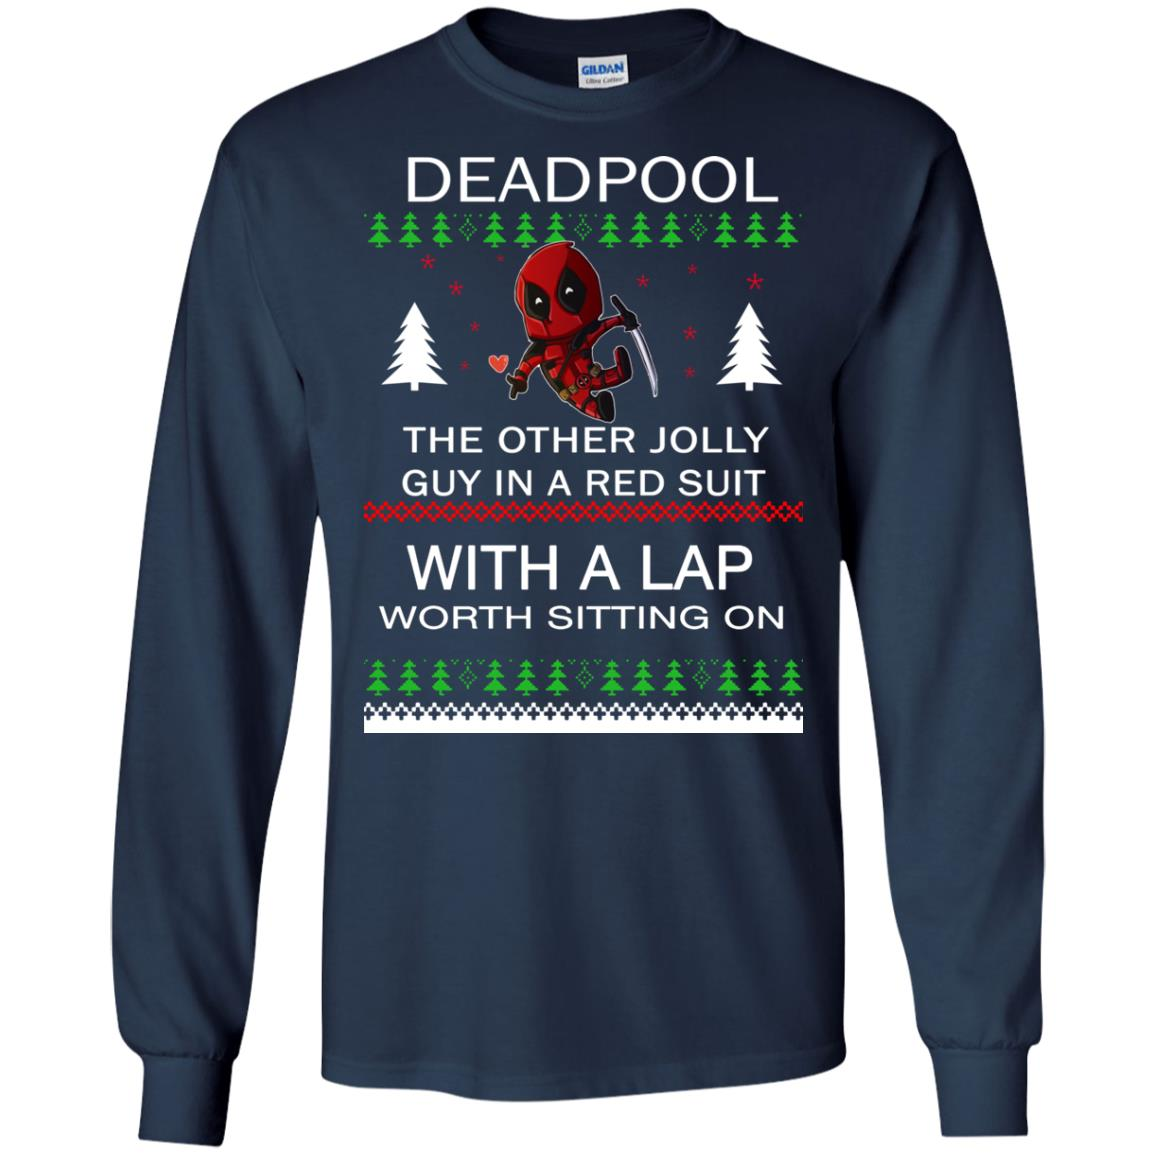 image 2830 - Deadpool The only jolly guy in a red suit with a Lap Christmas Sweater, Ugly Sweatshirts